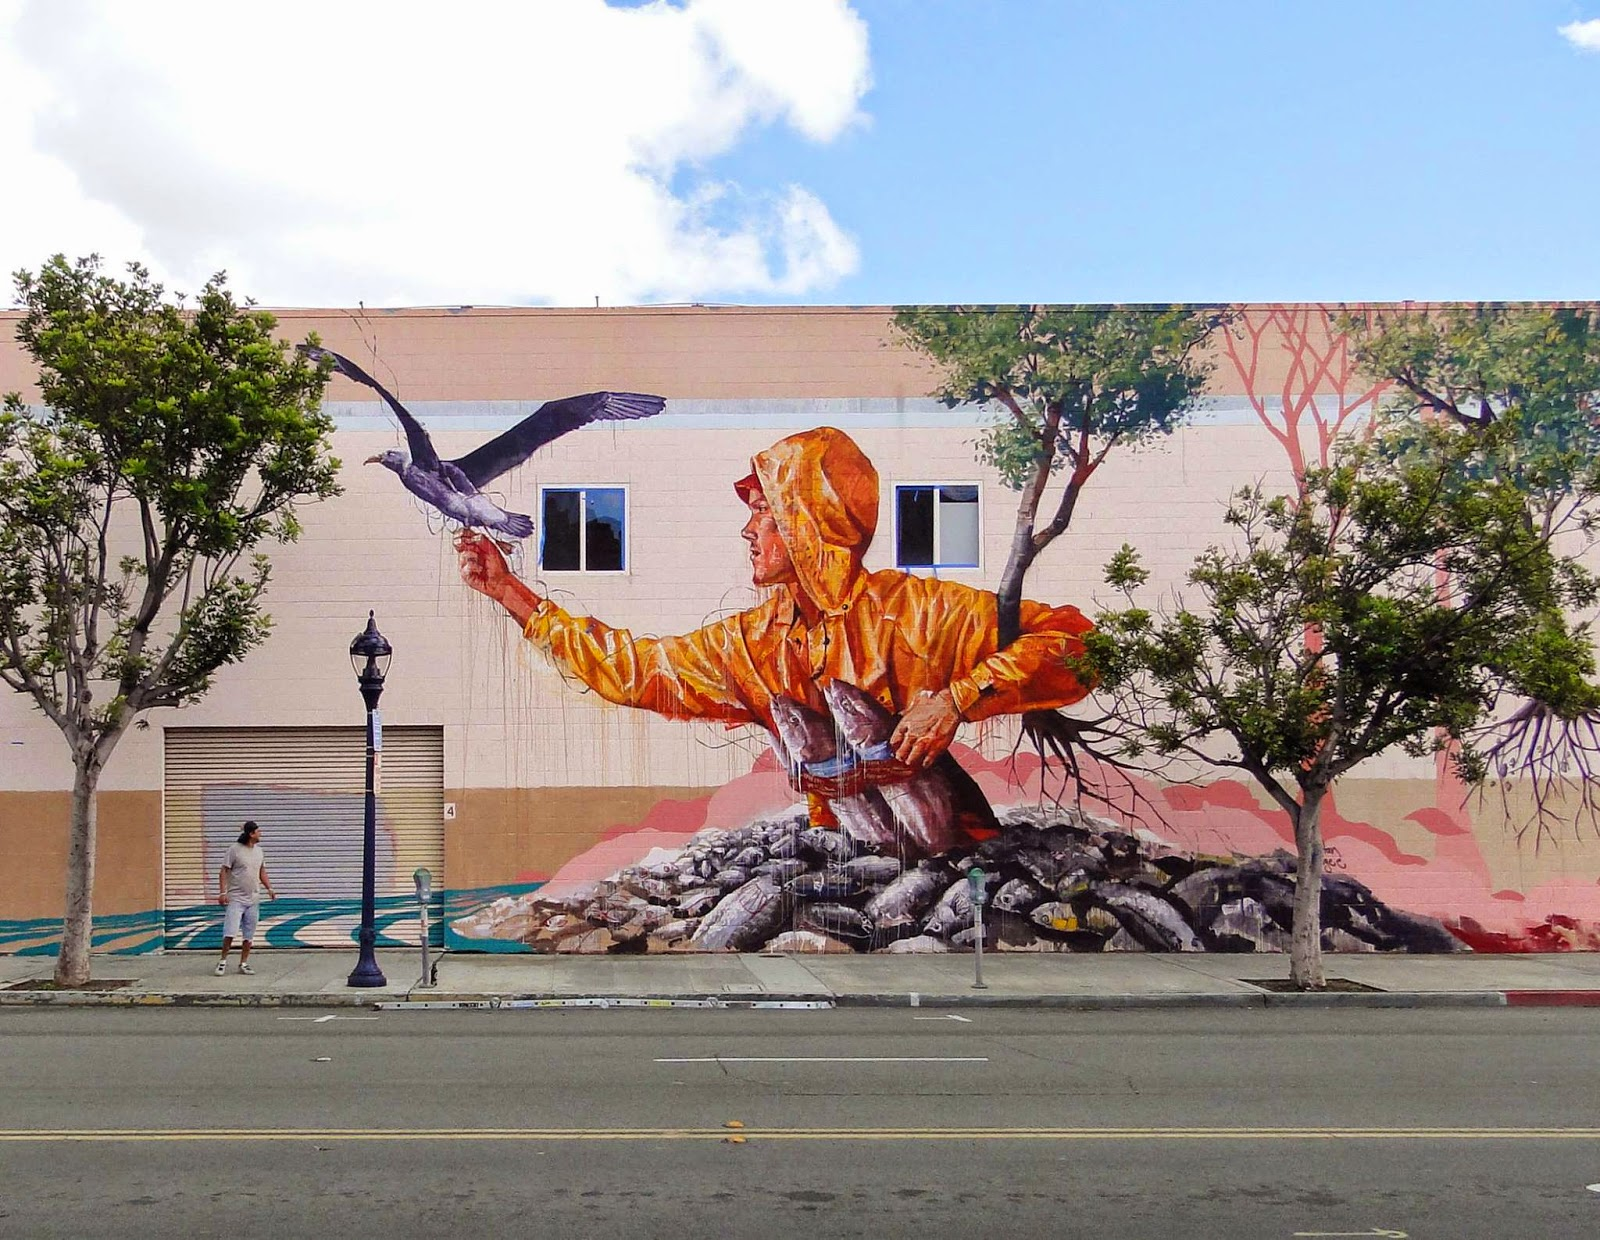 While we last heard from him a few days ago in Las Vegas, Fintan Magee is now in San Diego where he just wrapped up this new piece.